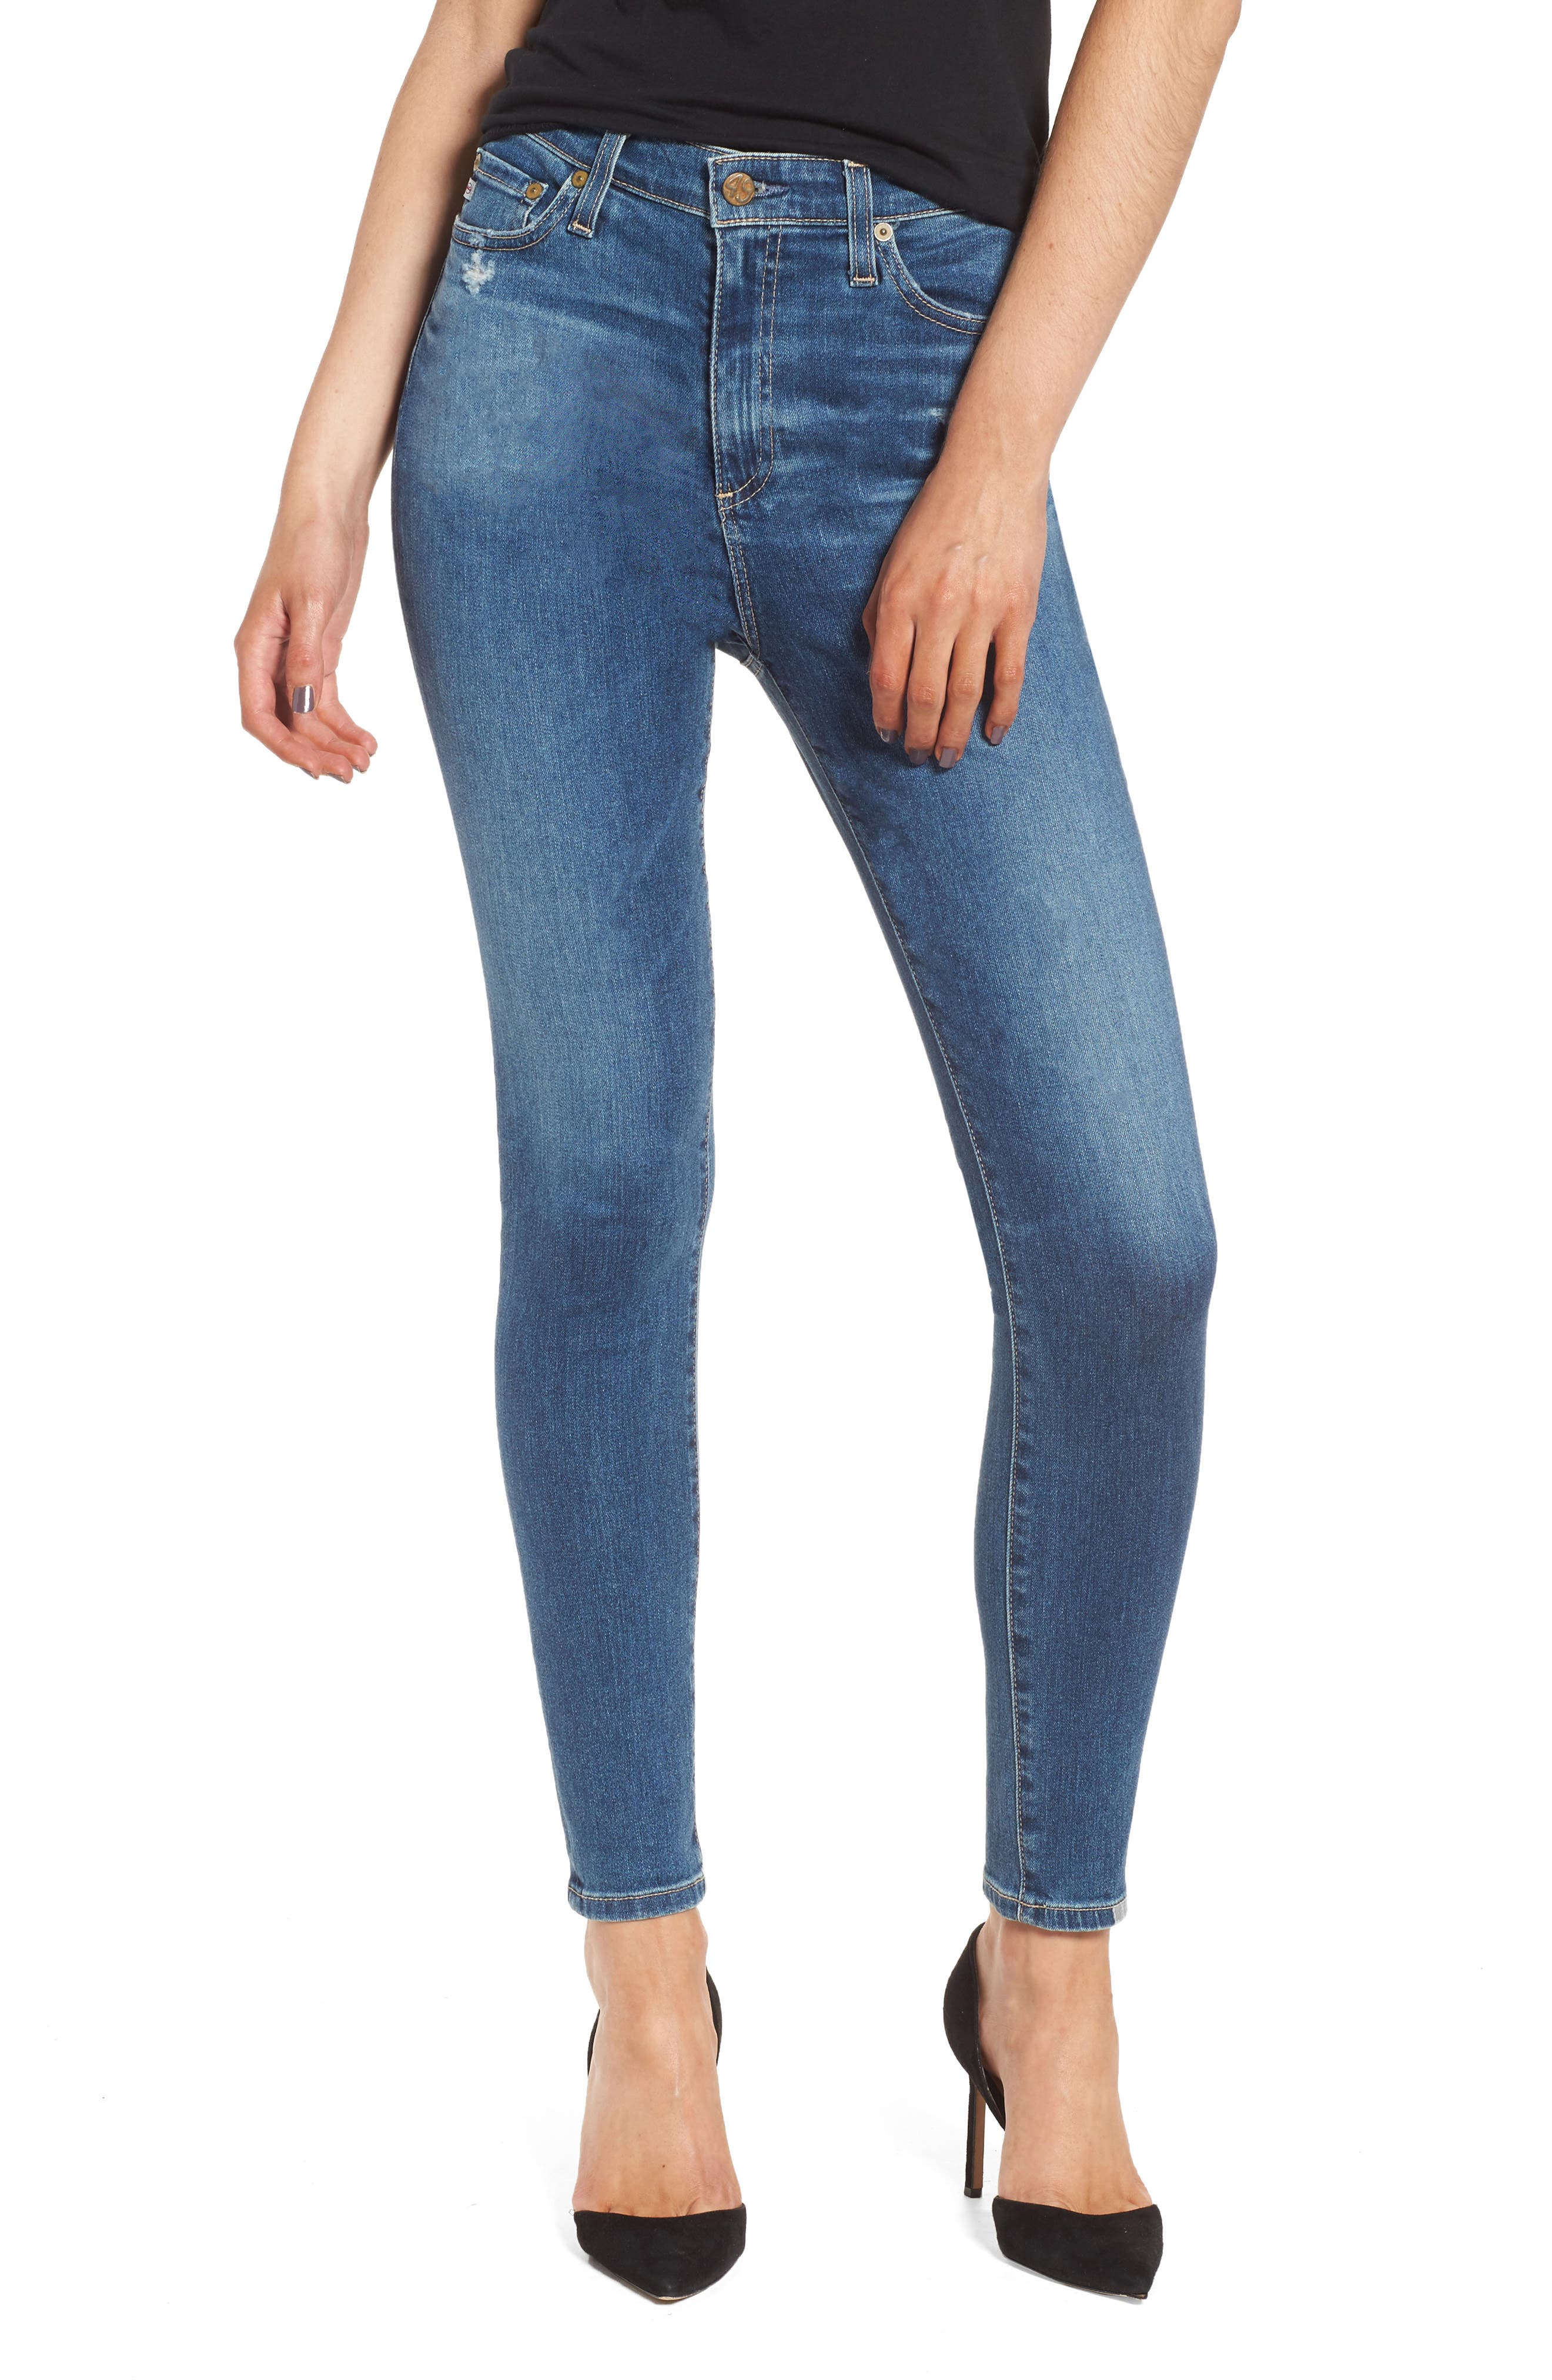 Mila Ankle Skinny Jeans,                             Main thumbnail 1, color,                             8 Years Infamy